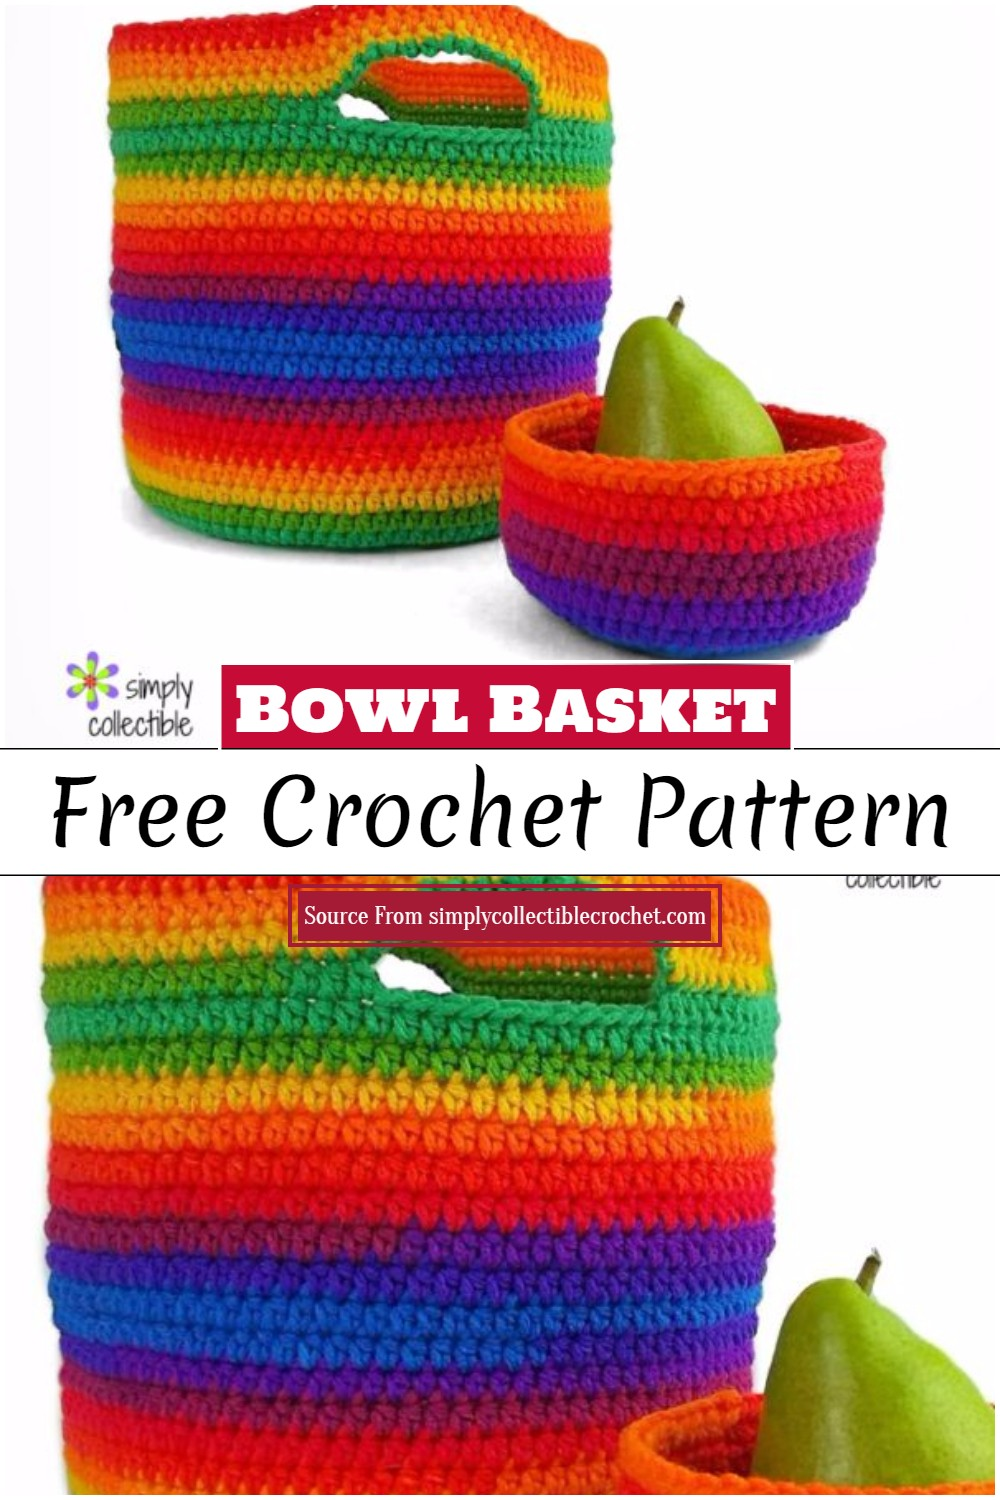 Crochet Bowl Basket Pattern